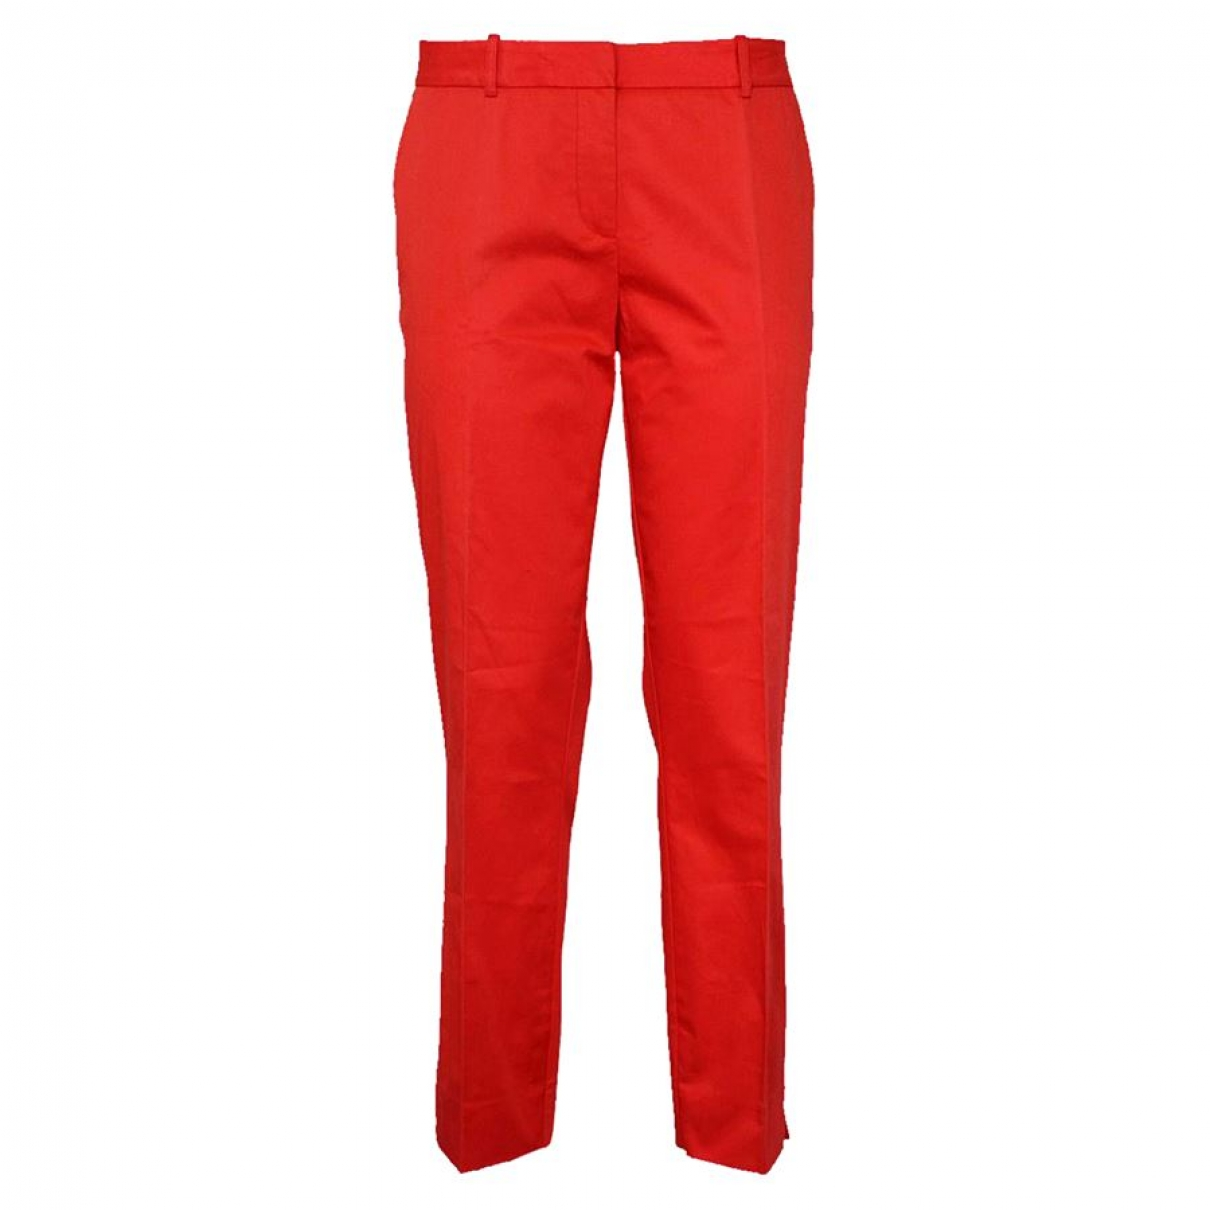 Blumarine \N Red Cotton Trousers for Women 46 IT